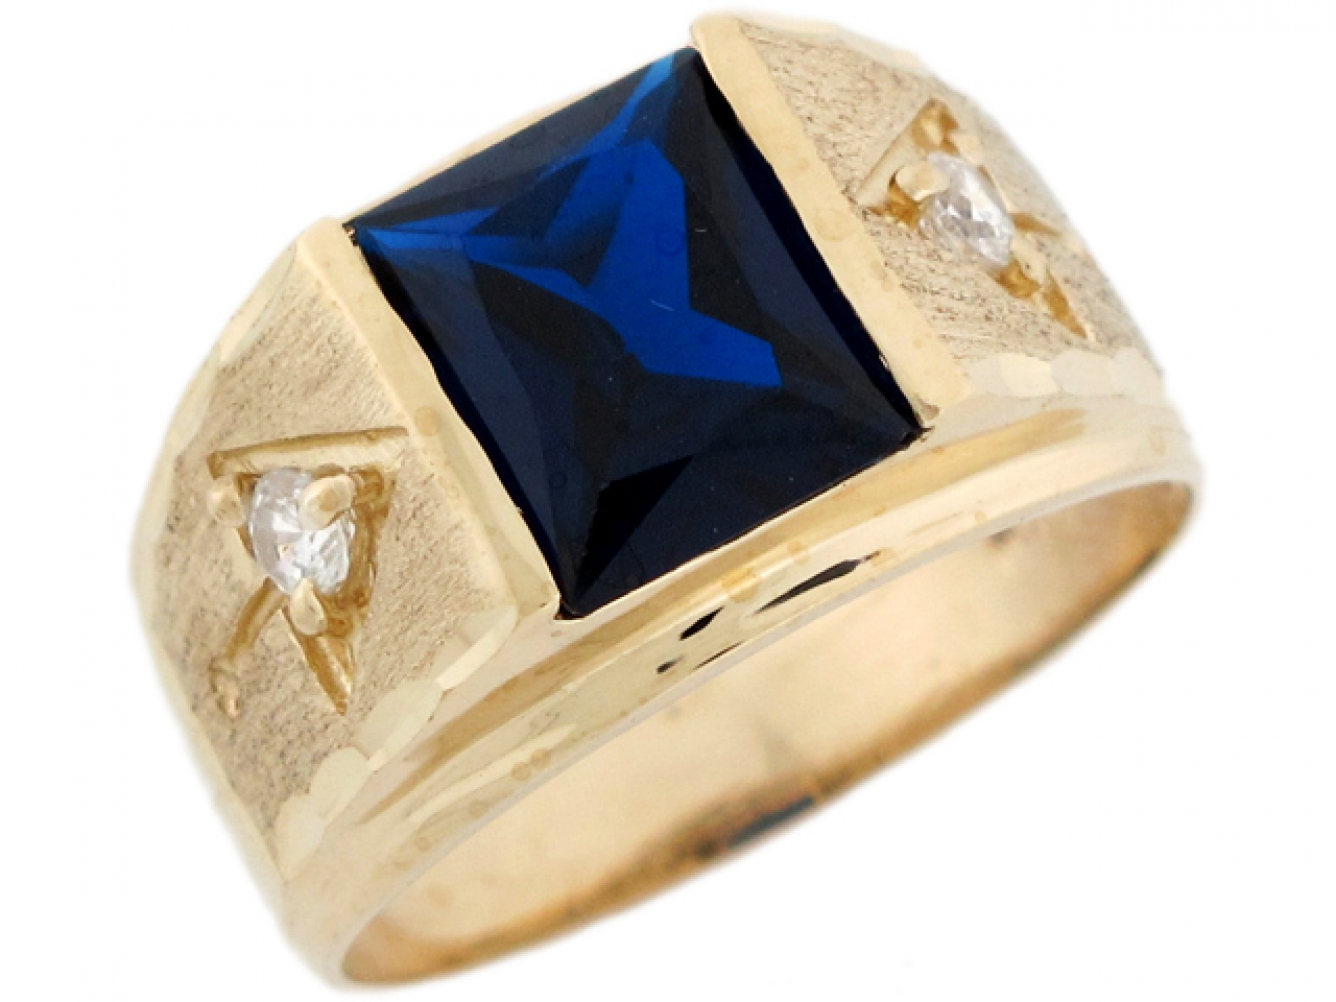 Details about  /10k or 14k Two-Tone Gold Simulated Blue Sapphire September Birthstone Pendant